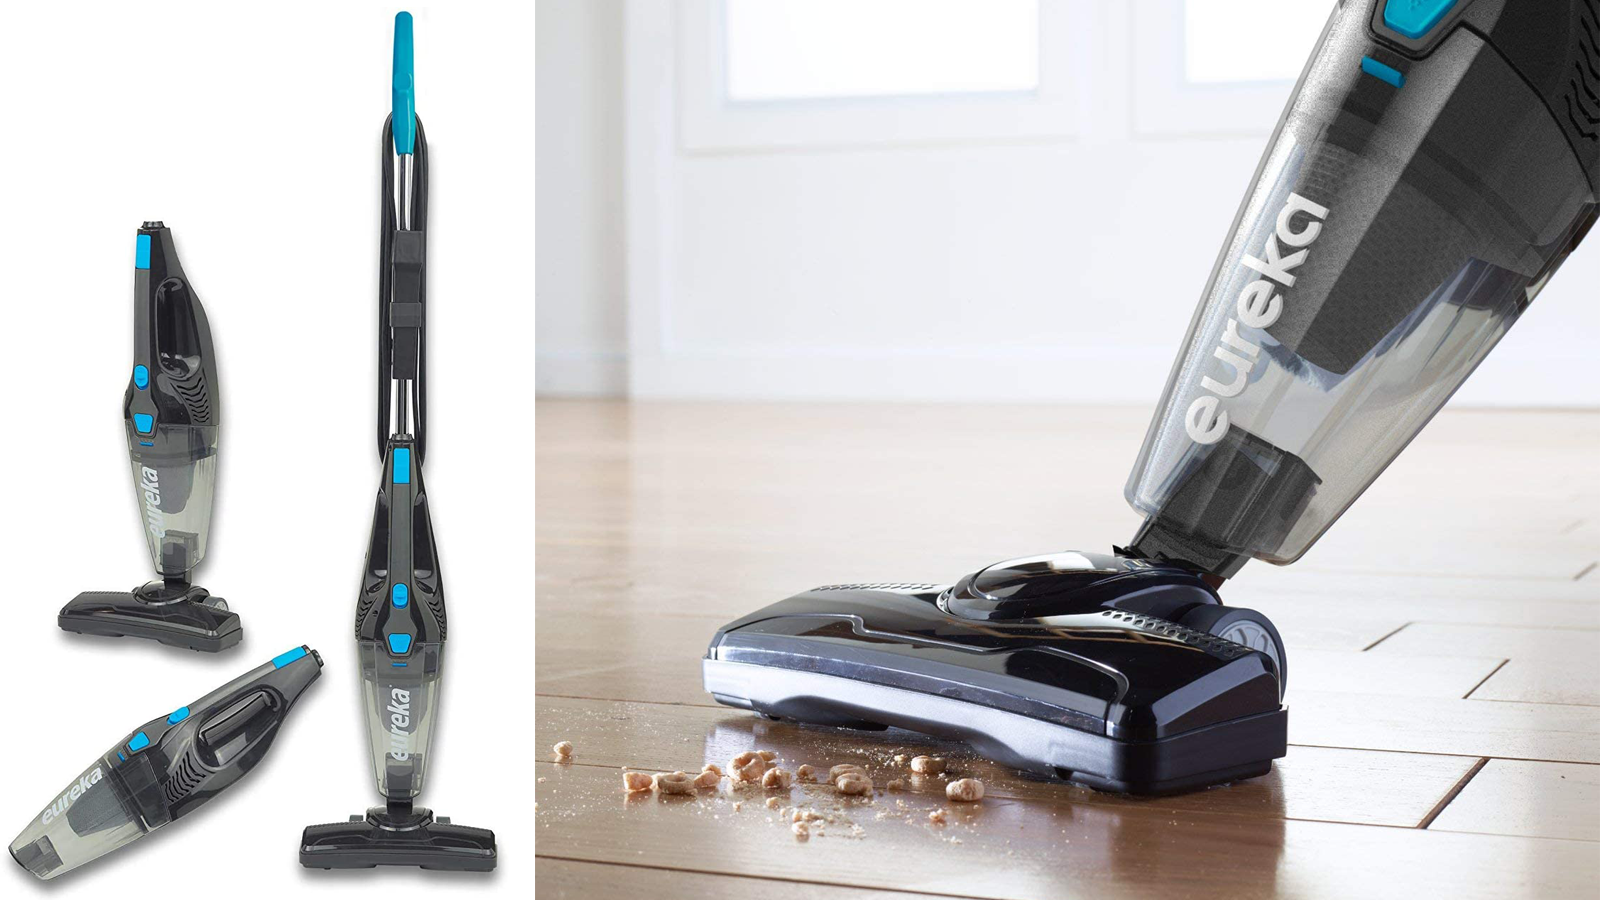 This 3-in-1 Stick Vacuum Cleaner Makes Vacuuming Easy